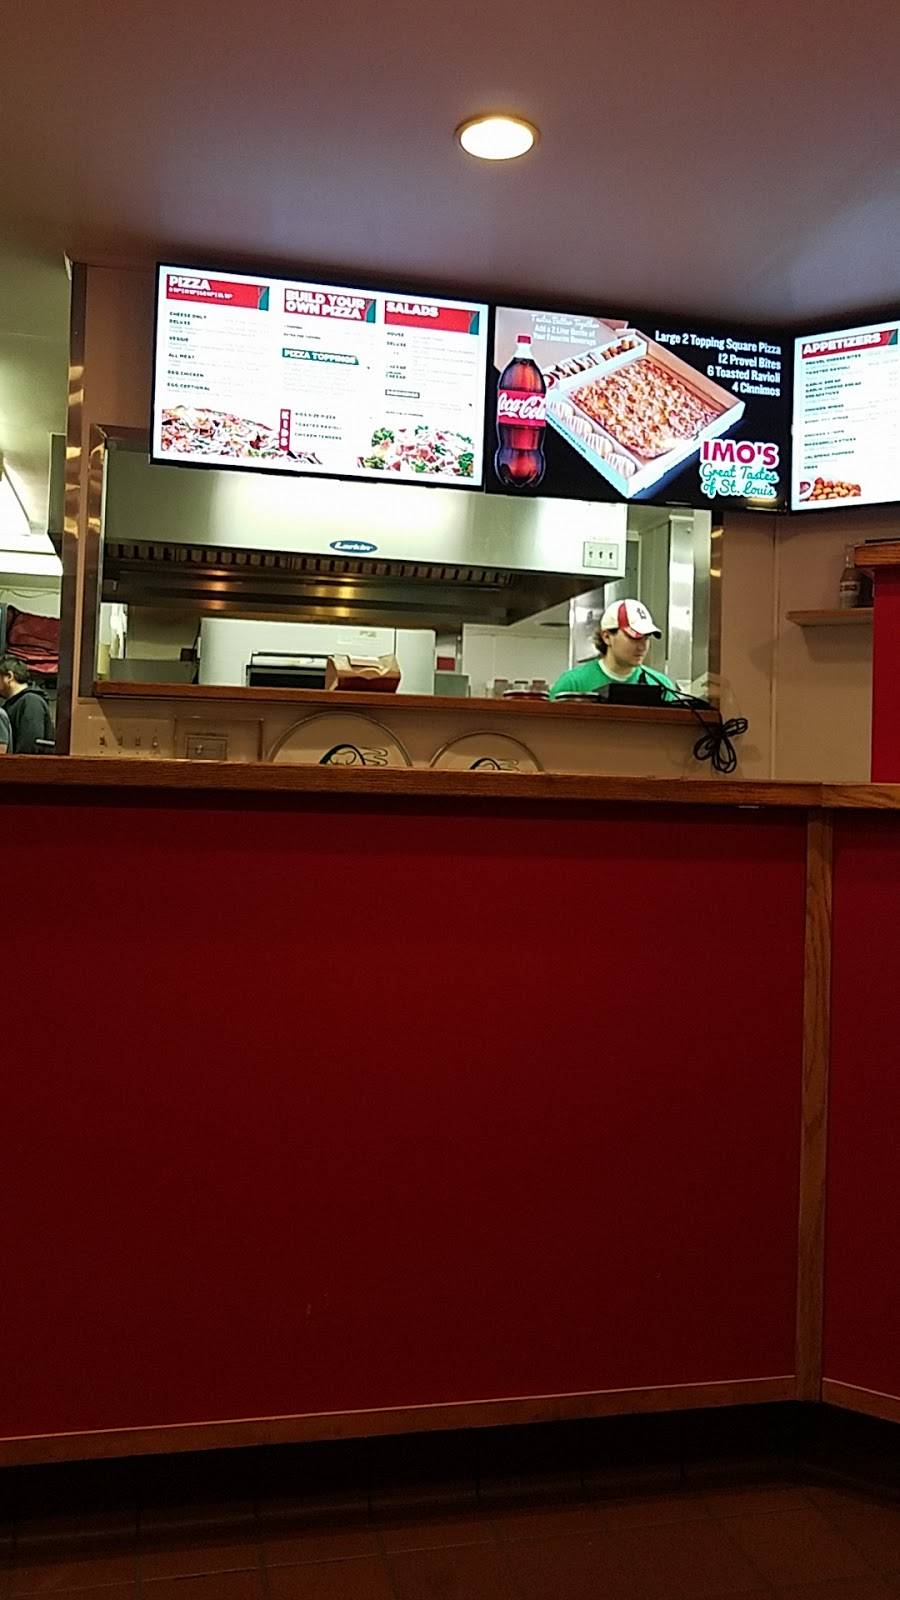 Imos Pizza - meal delivery  | Photo 4 of 8 | Address: 133 Fiedler Ln, Fenton, MO 63026, USA | Phone: (636) 349-3399